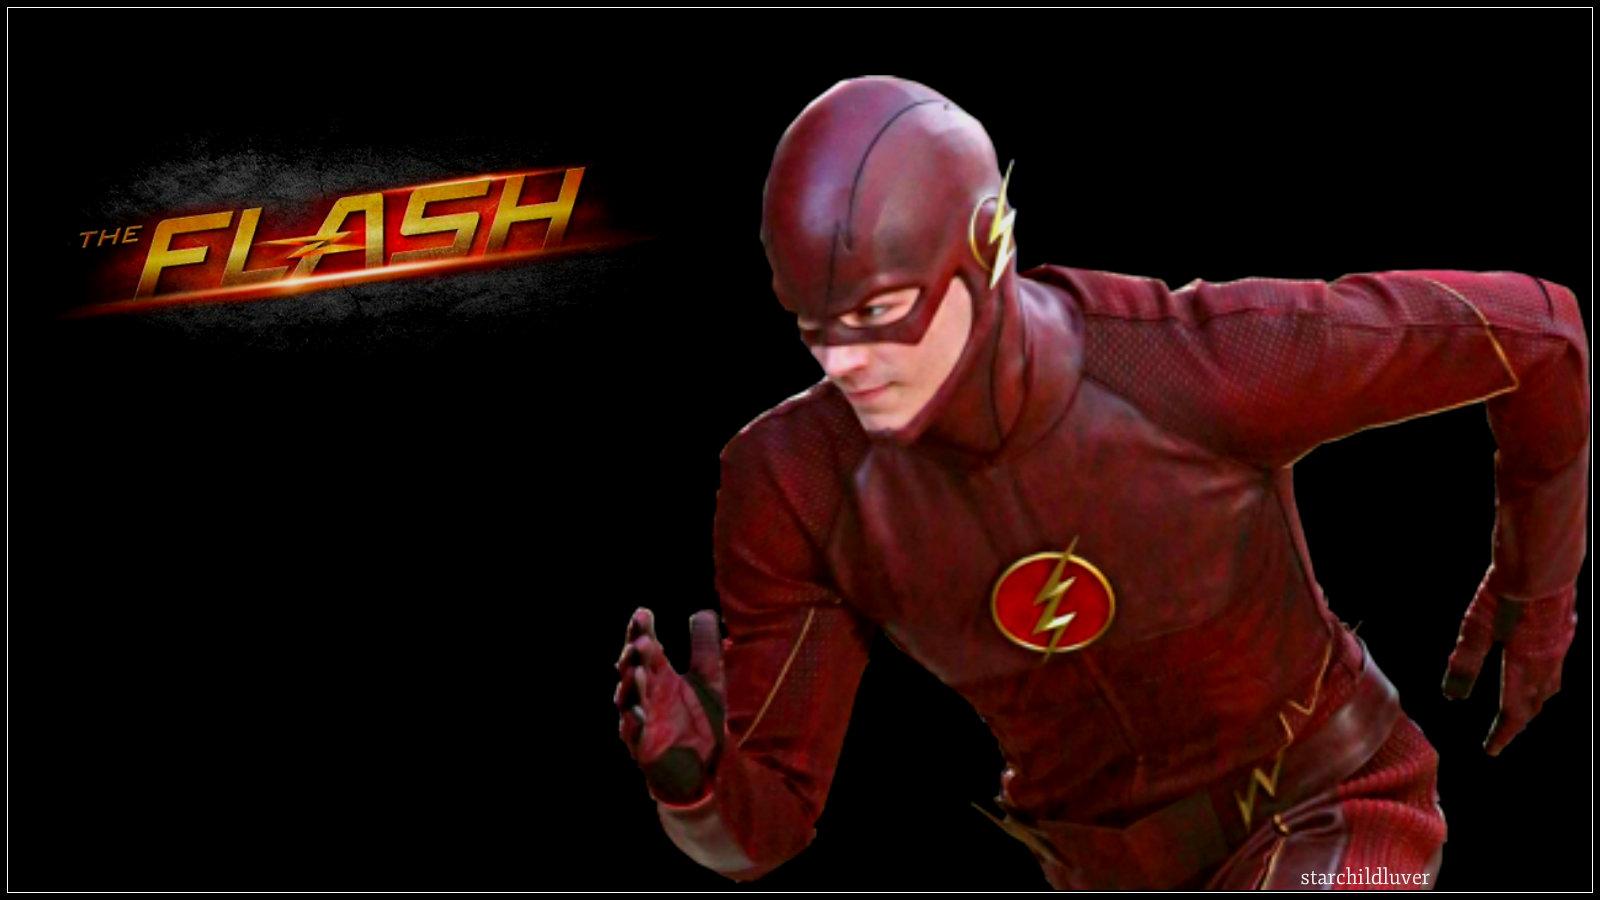 The Flash   The Flash CW Wallpaper 37771517 1600x900